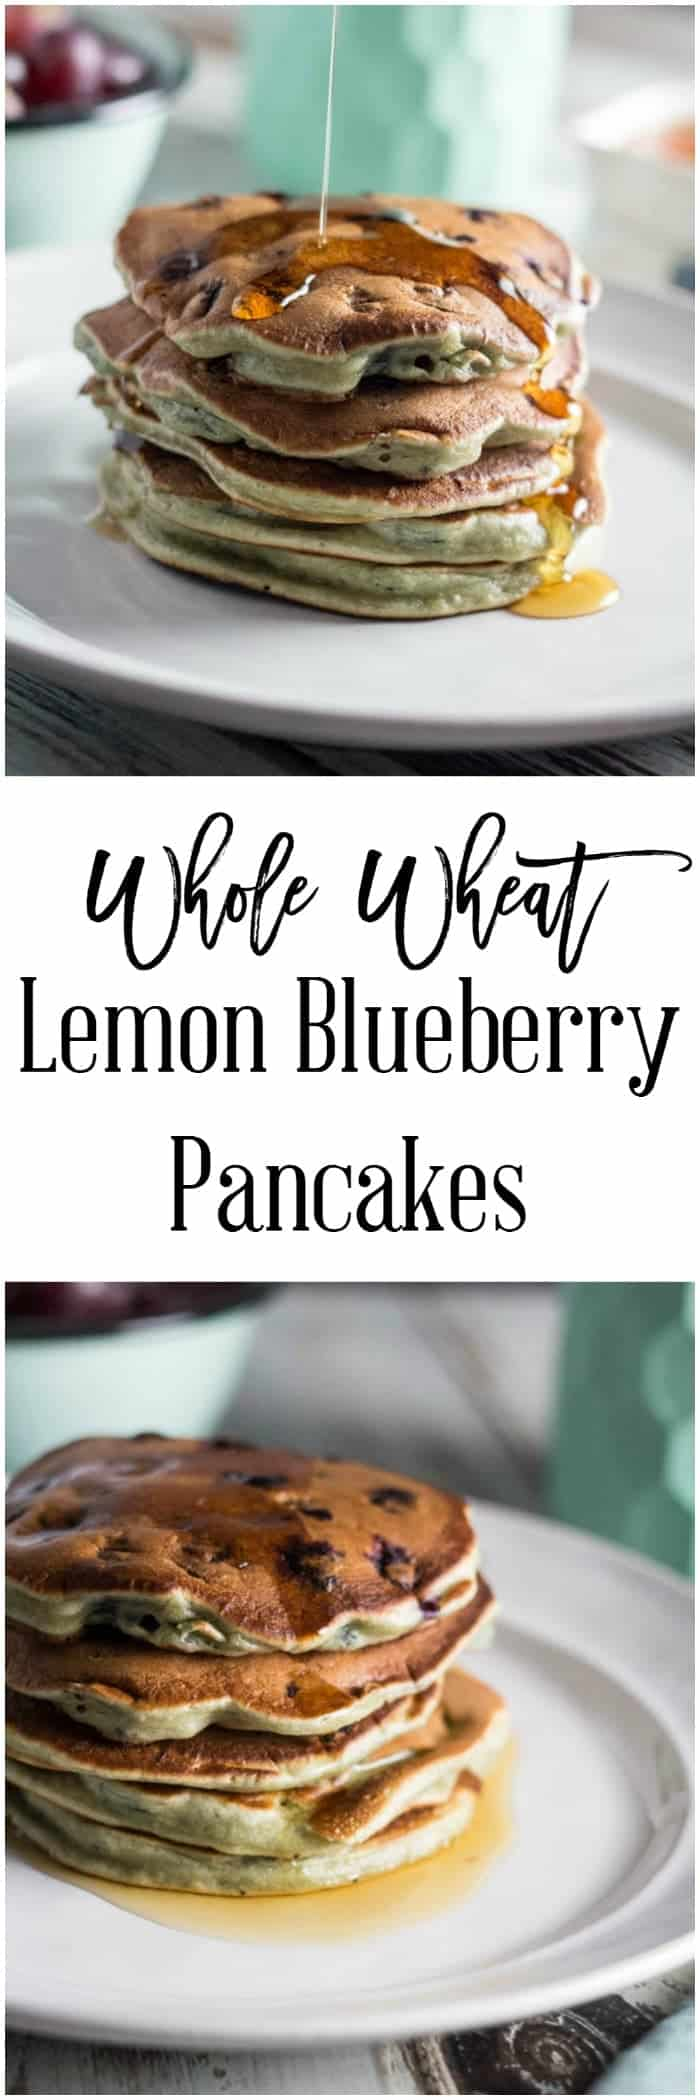 Whole Wheat Lemon Blueberry Pancakes - Breakfast doesn't have to mean spending hours in the kitchen. These whole wheat lemon blueberry pancakes are great to make ahead over the weekend and freeze for quick and easy breakfasts during the week. They are also only 6 SmartPoints per serving on Weight Watchers, 2 pancakes